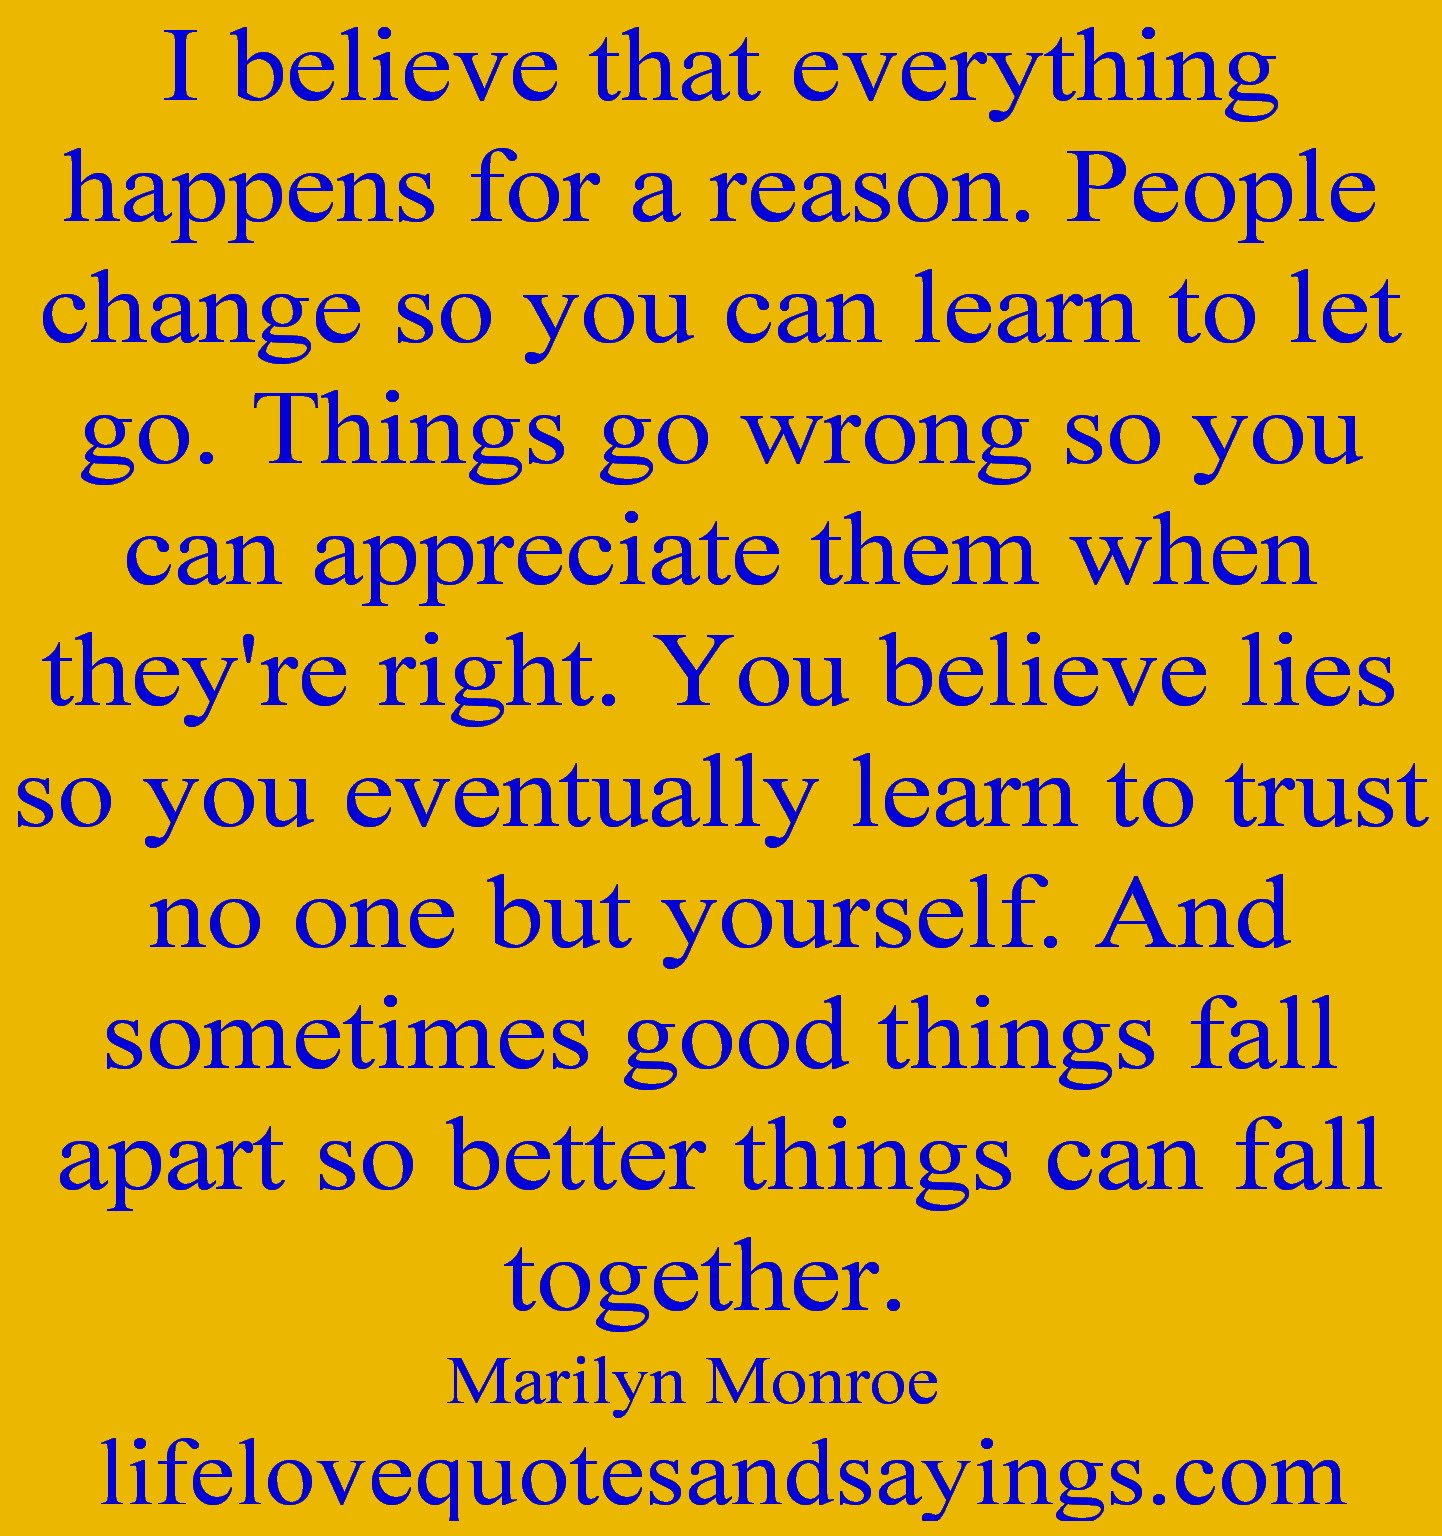 Marilynmonroe New Marilyn Monroe Quotes Everything Happens For A Reason